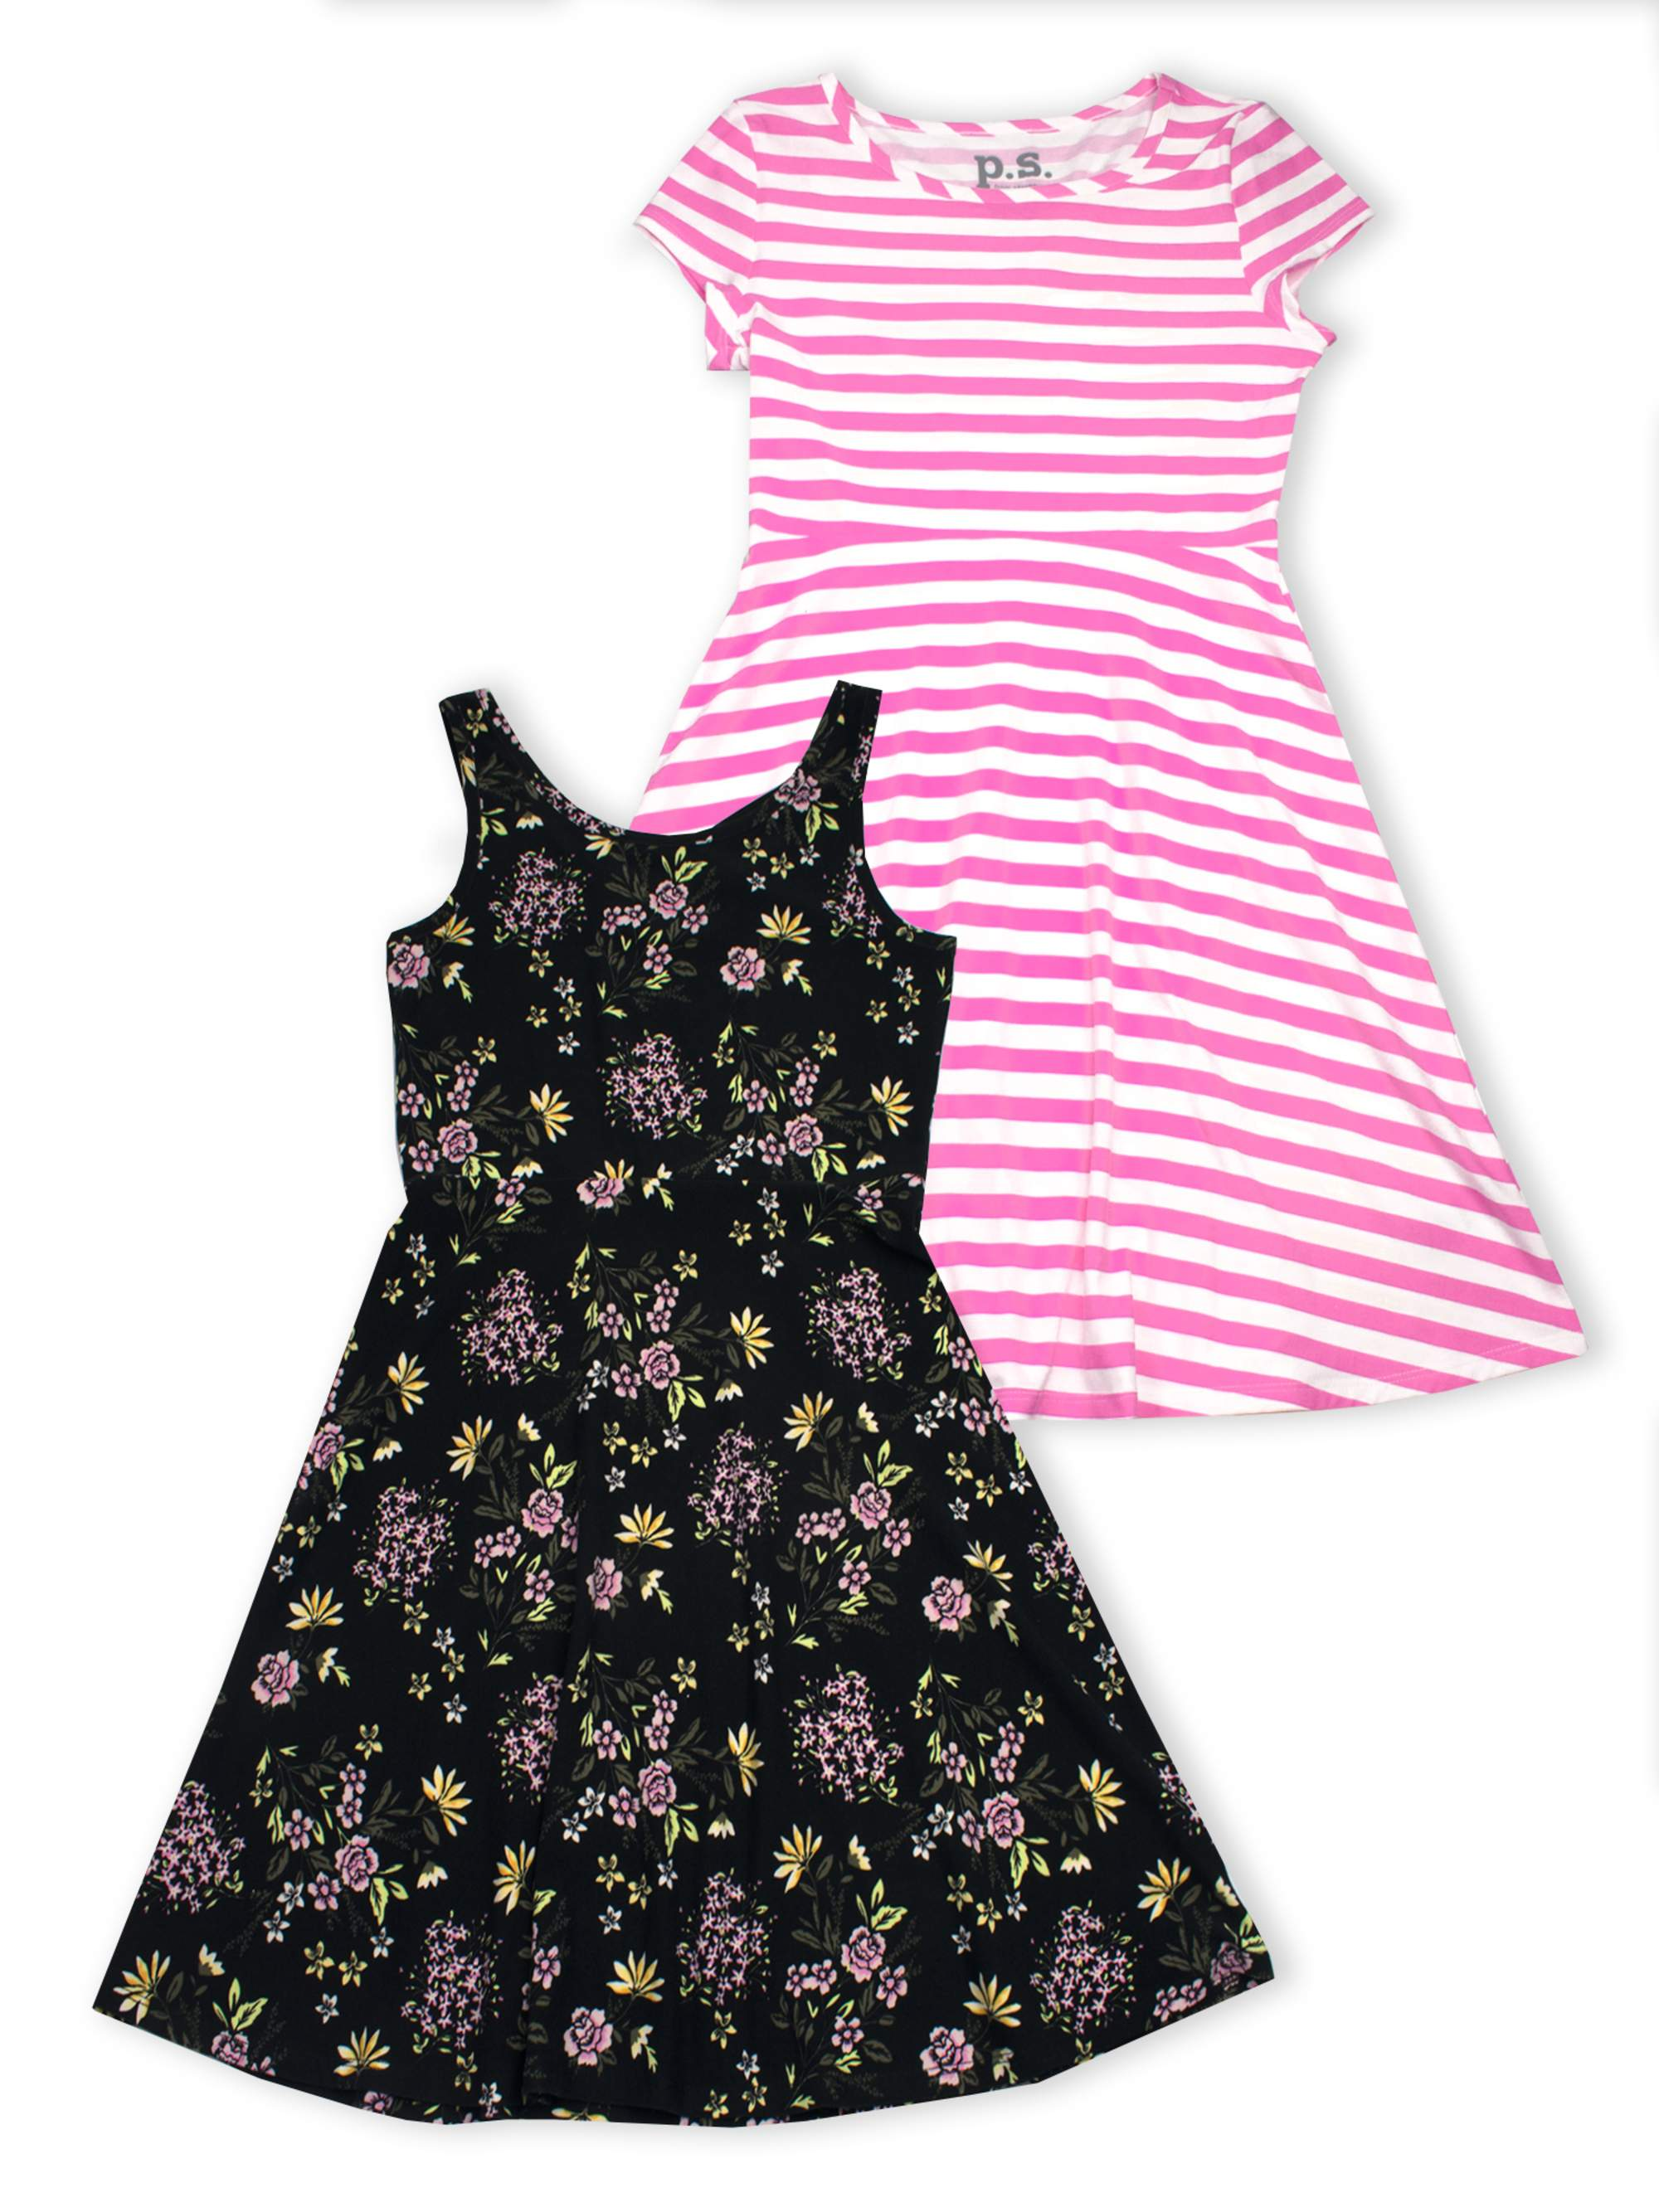 Tropical Floral and Stripe Dresses, 2-Pack (Little Girls & Big Girls)